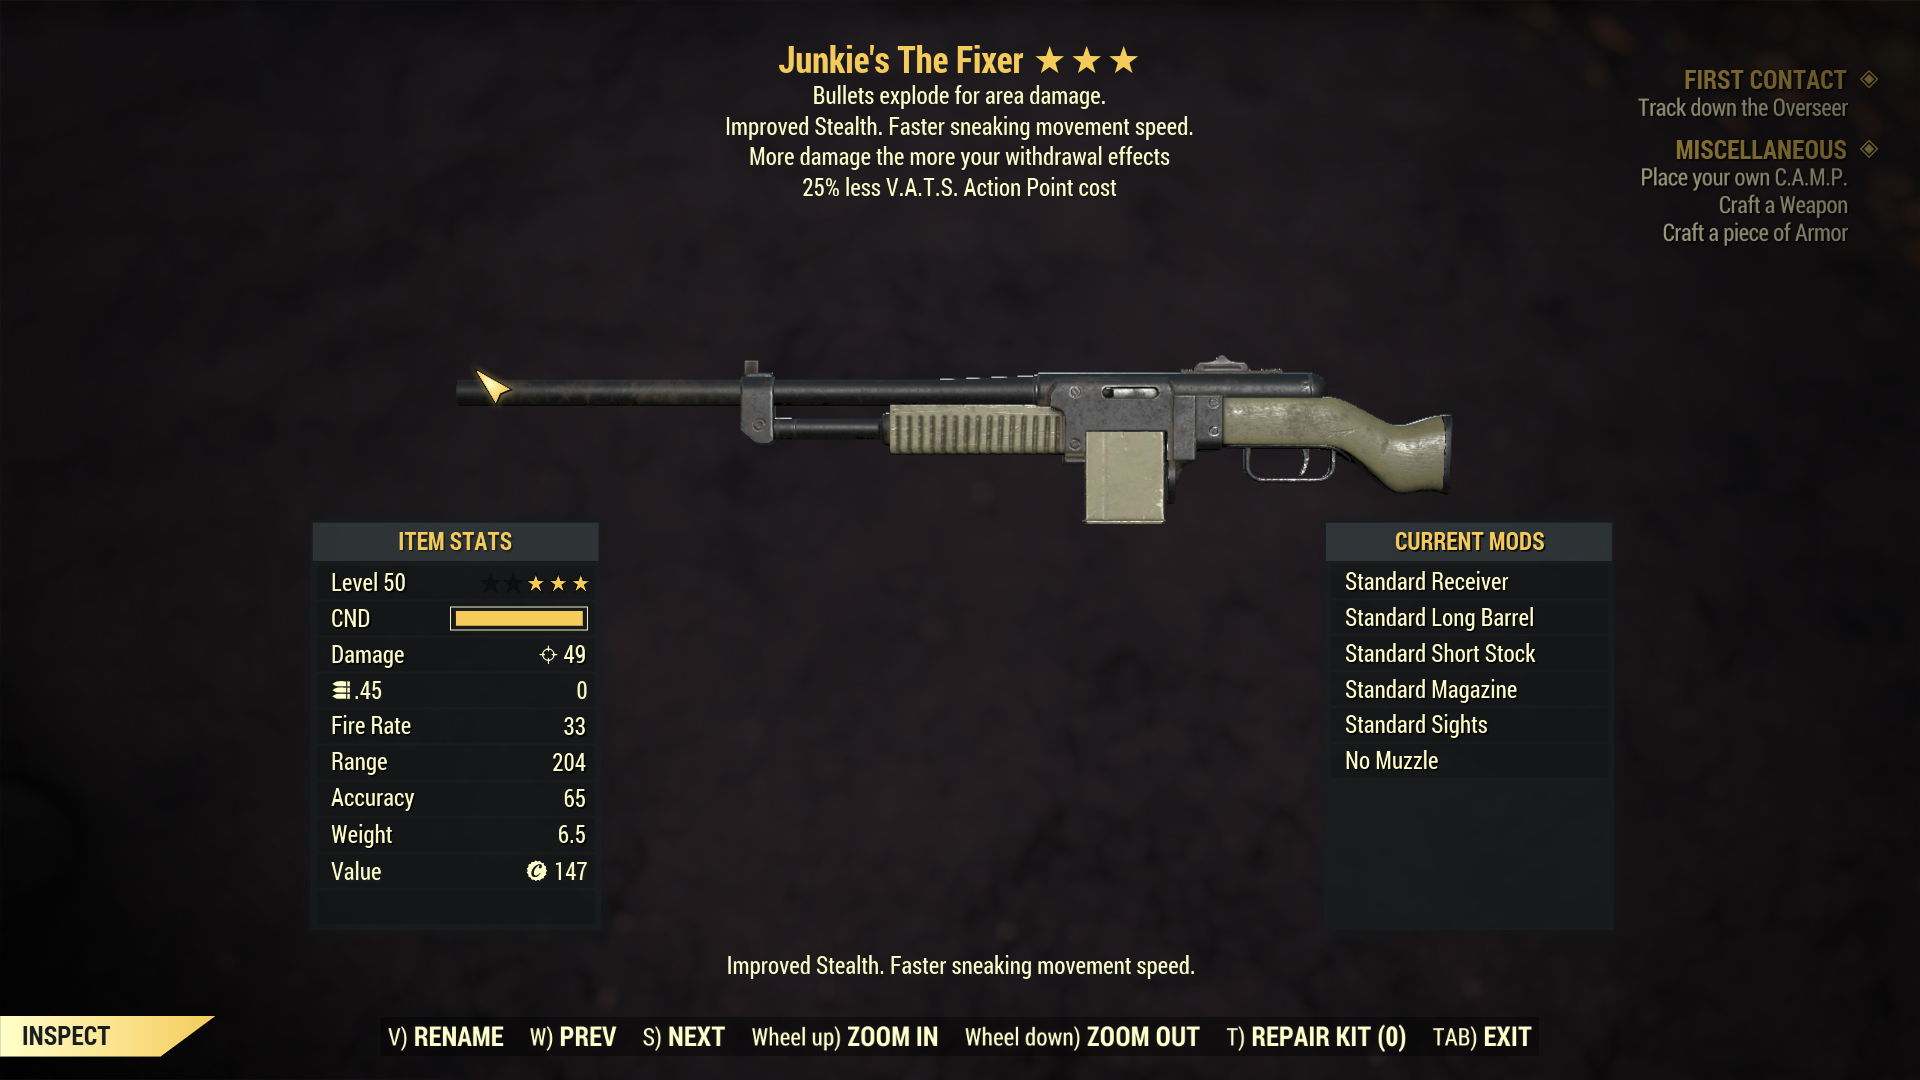 Junkie's Explosive The Fixer (25% Less VATS AP Cost)